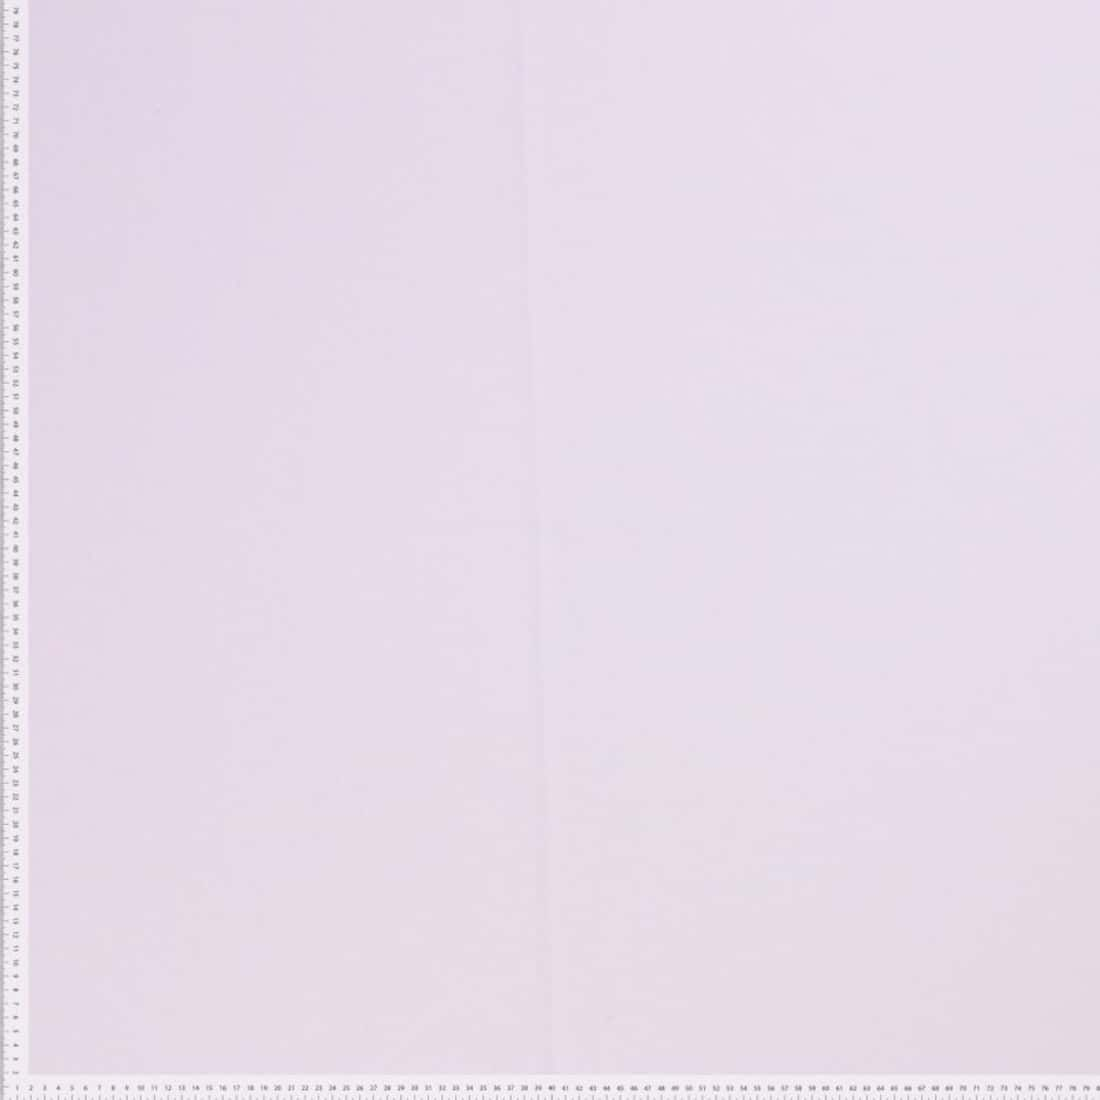 Remnant - Premium Ponte Roma Jersey - From Recycled Plastic Bottles - White - 1m x 160cm - Mark